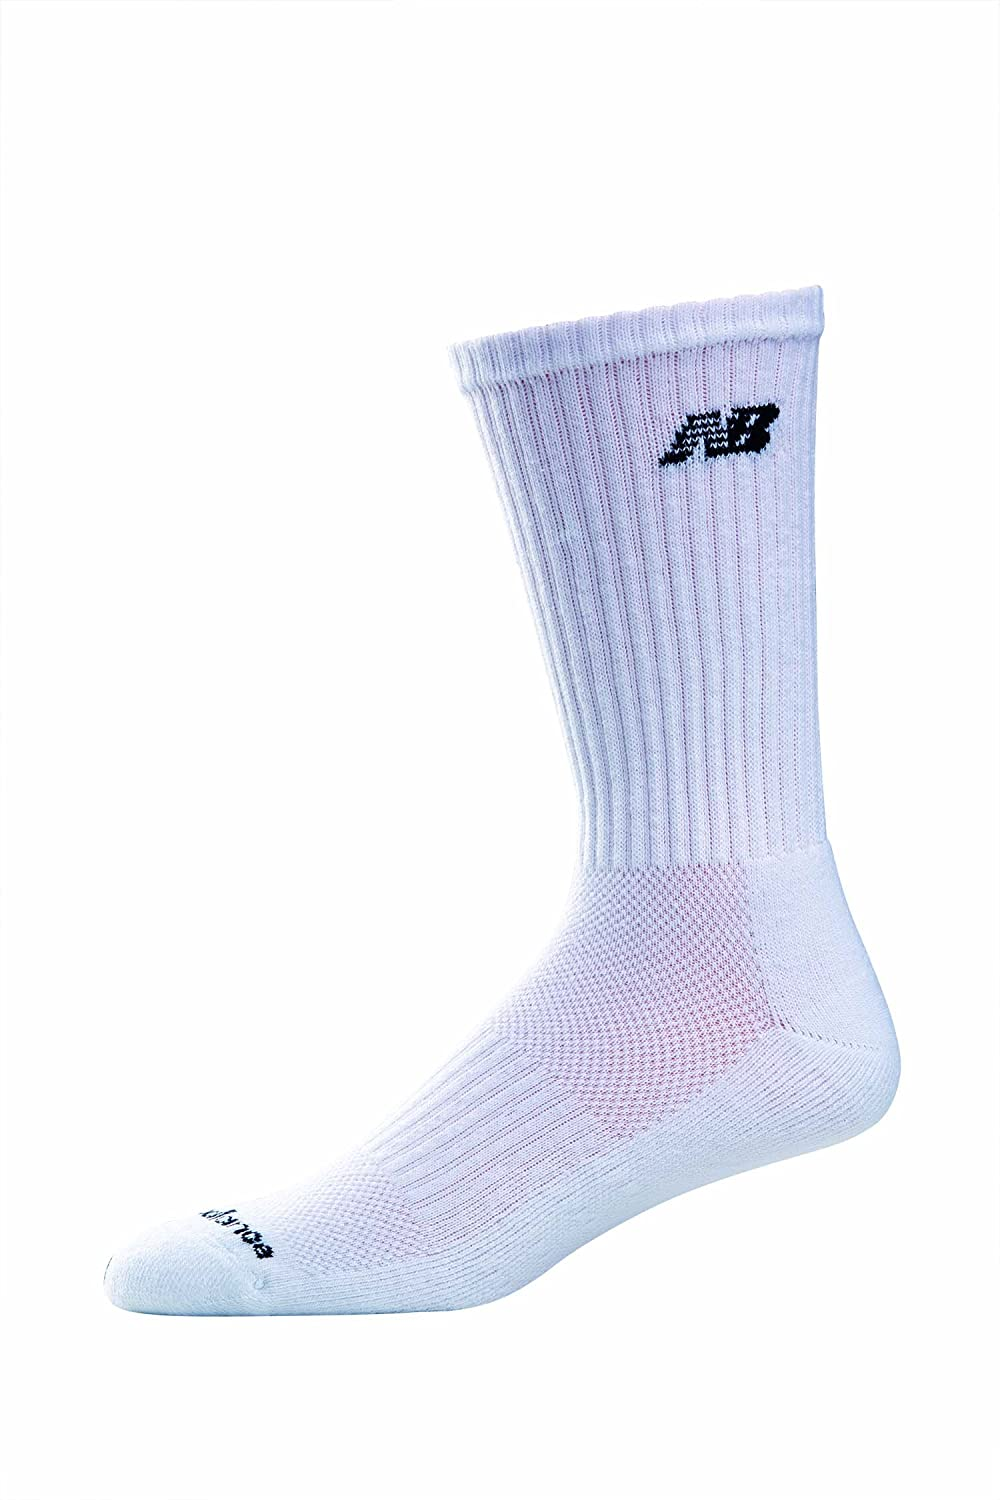 New Balance White Socks